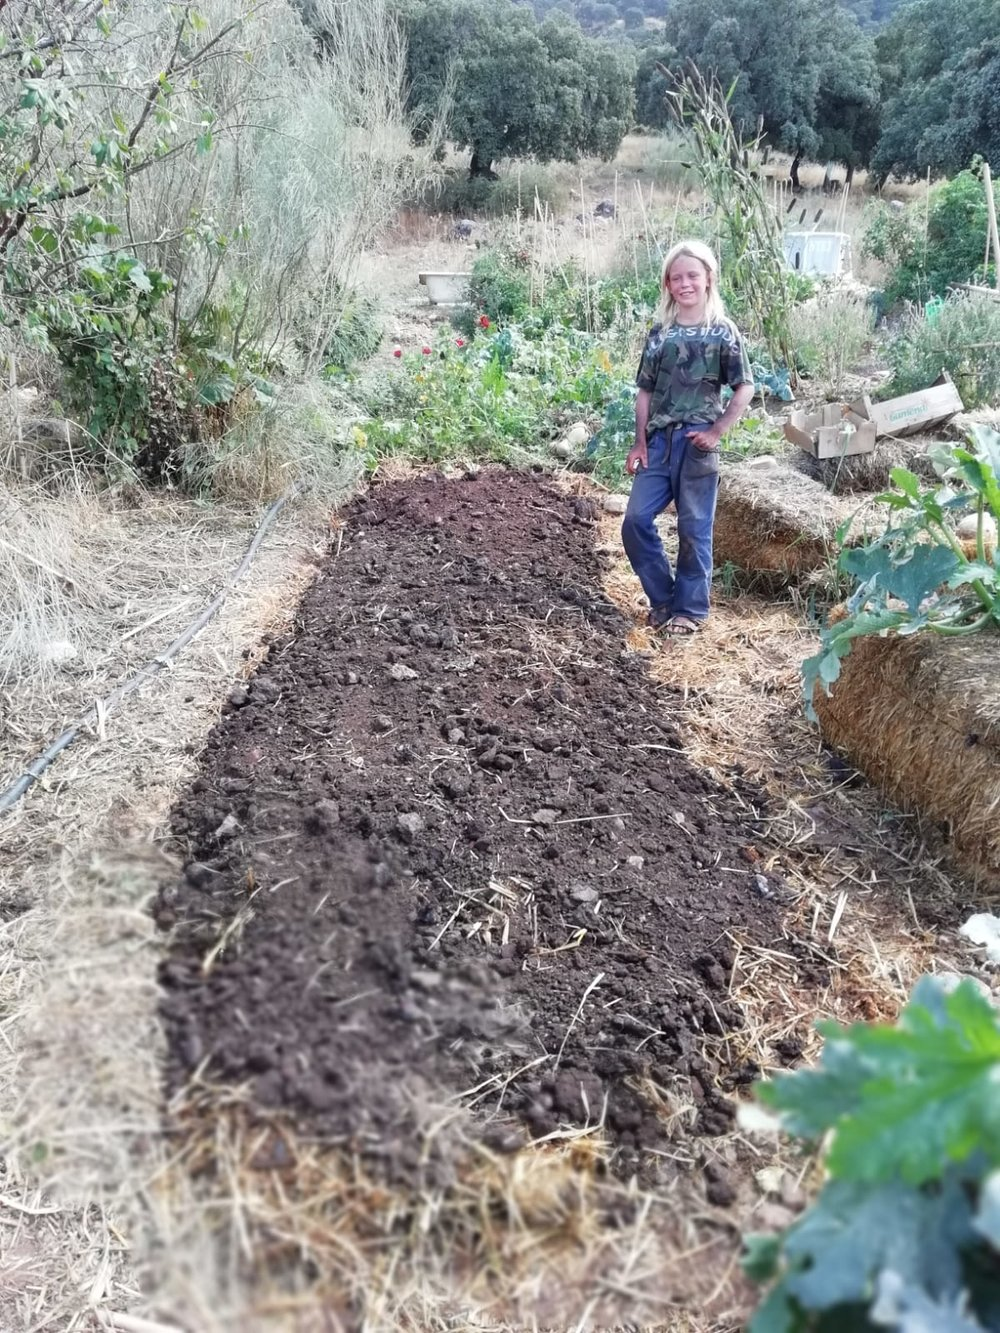 Step 2: A thin substrate of mature compost or good soil is placed on top, into which seeds or seedlings are placed